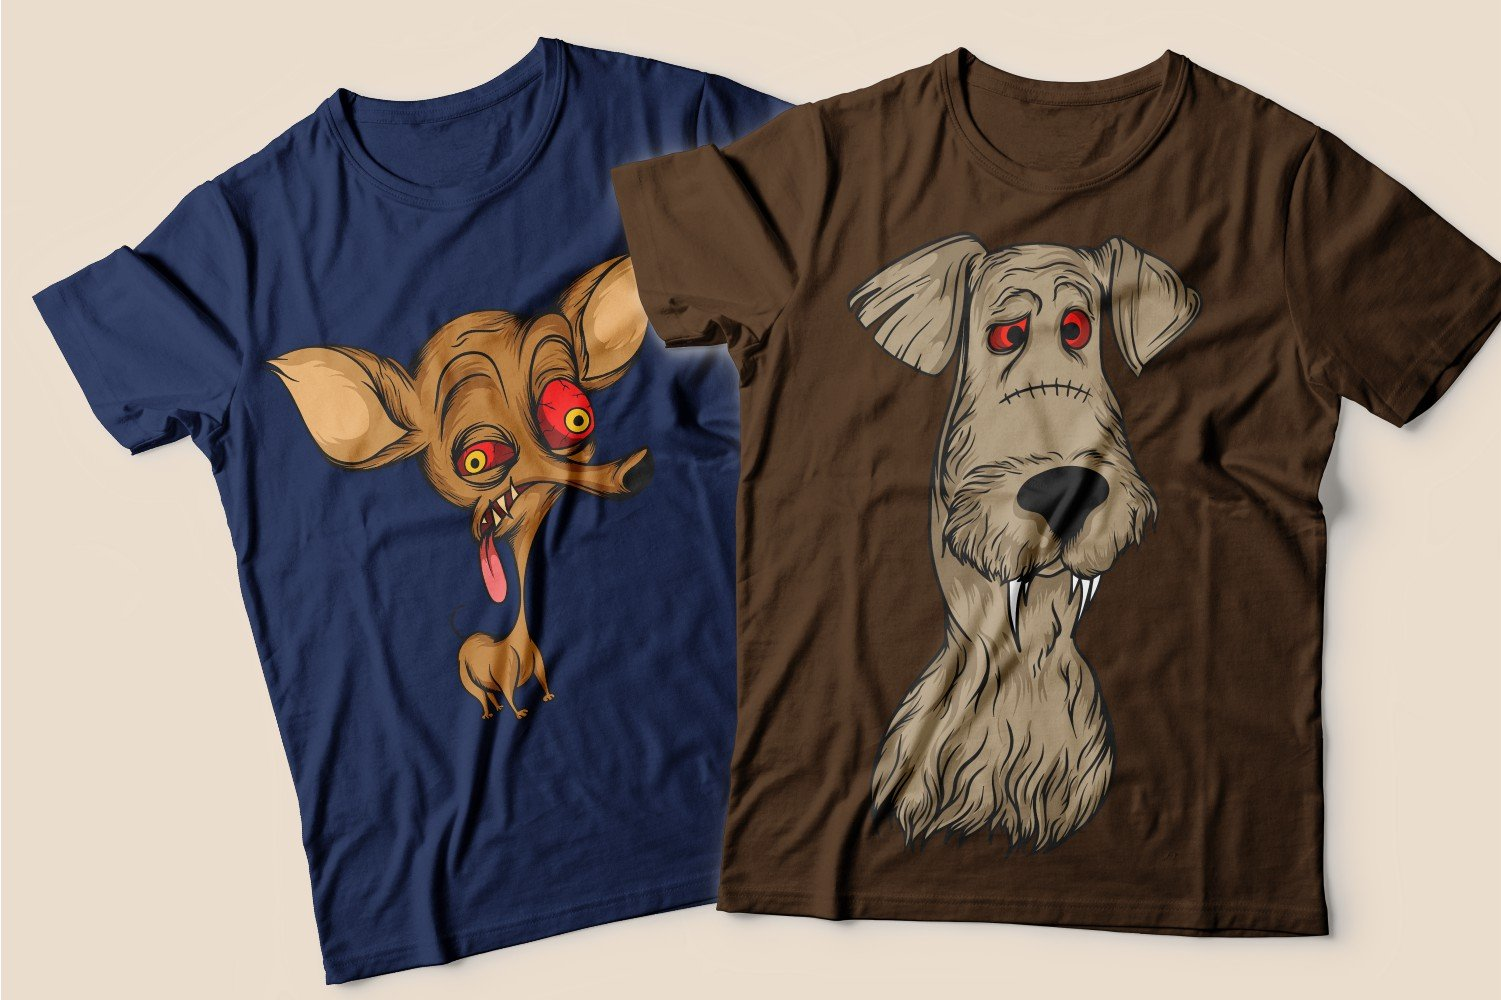 Two T-shirts: one blue with a tired little dog and the other brown with a yard dog.